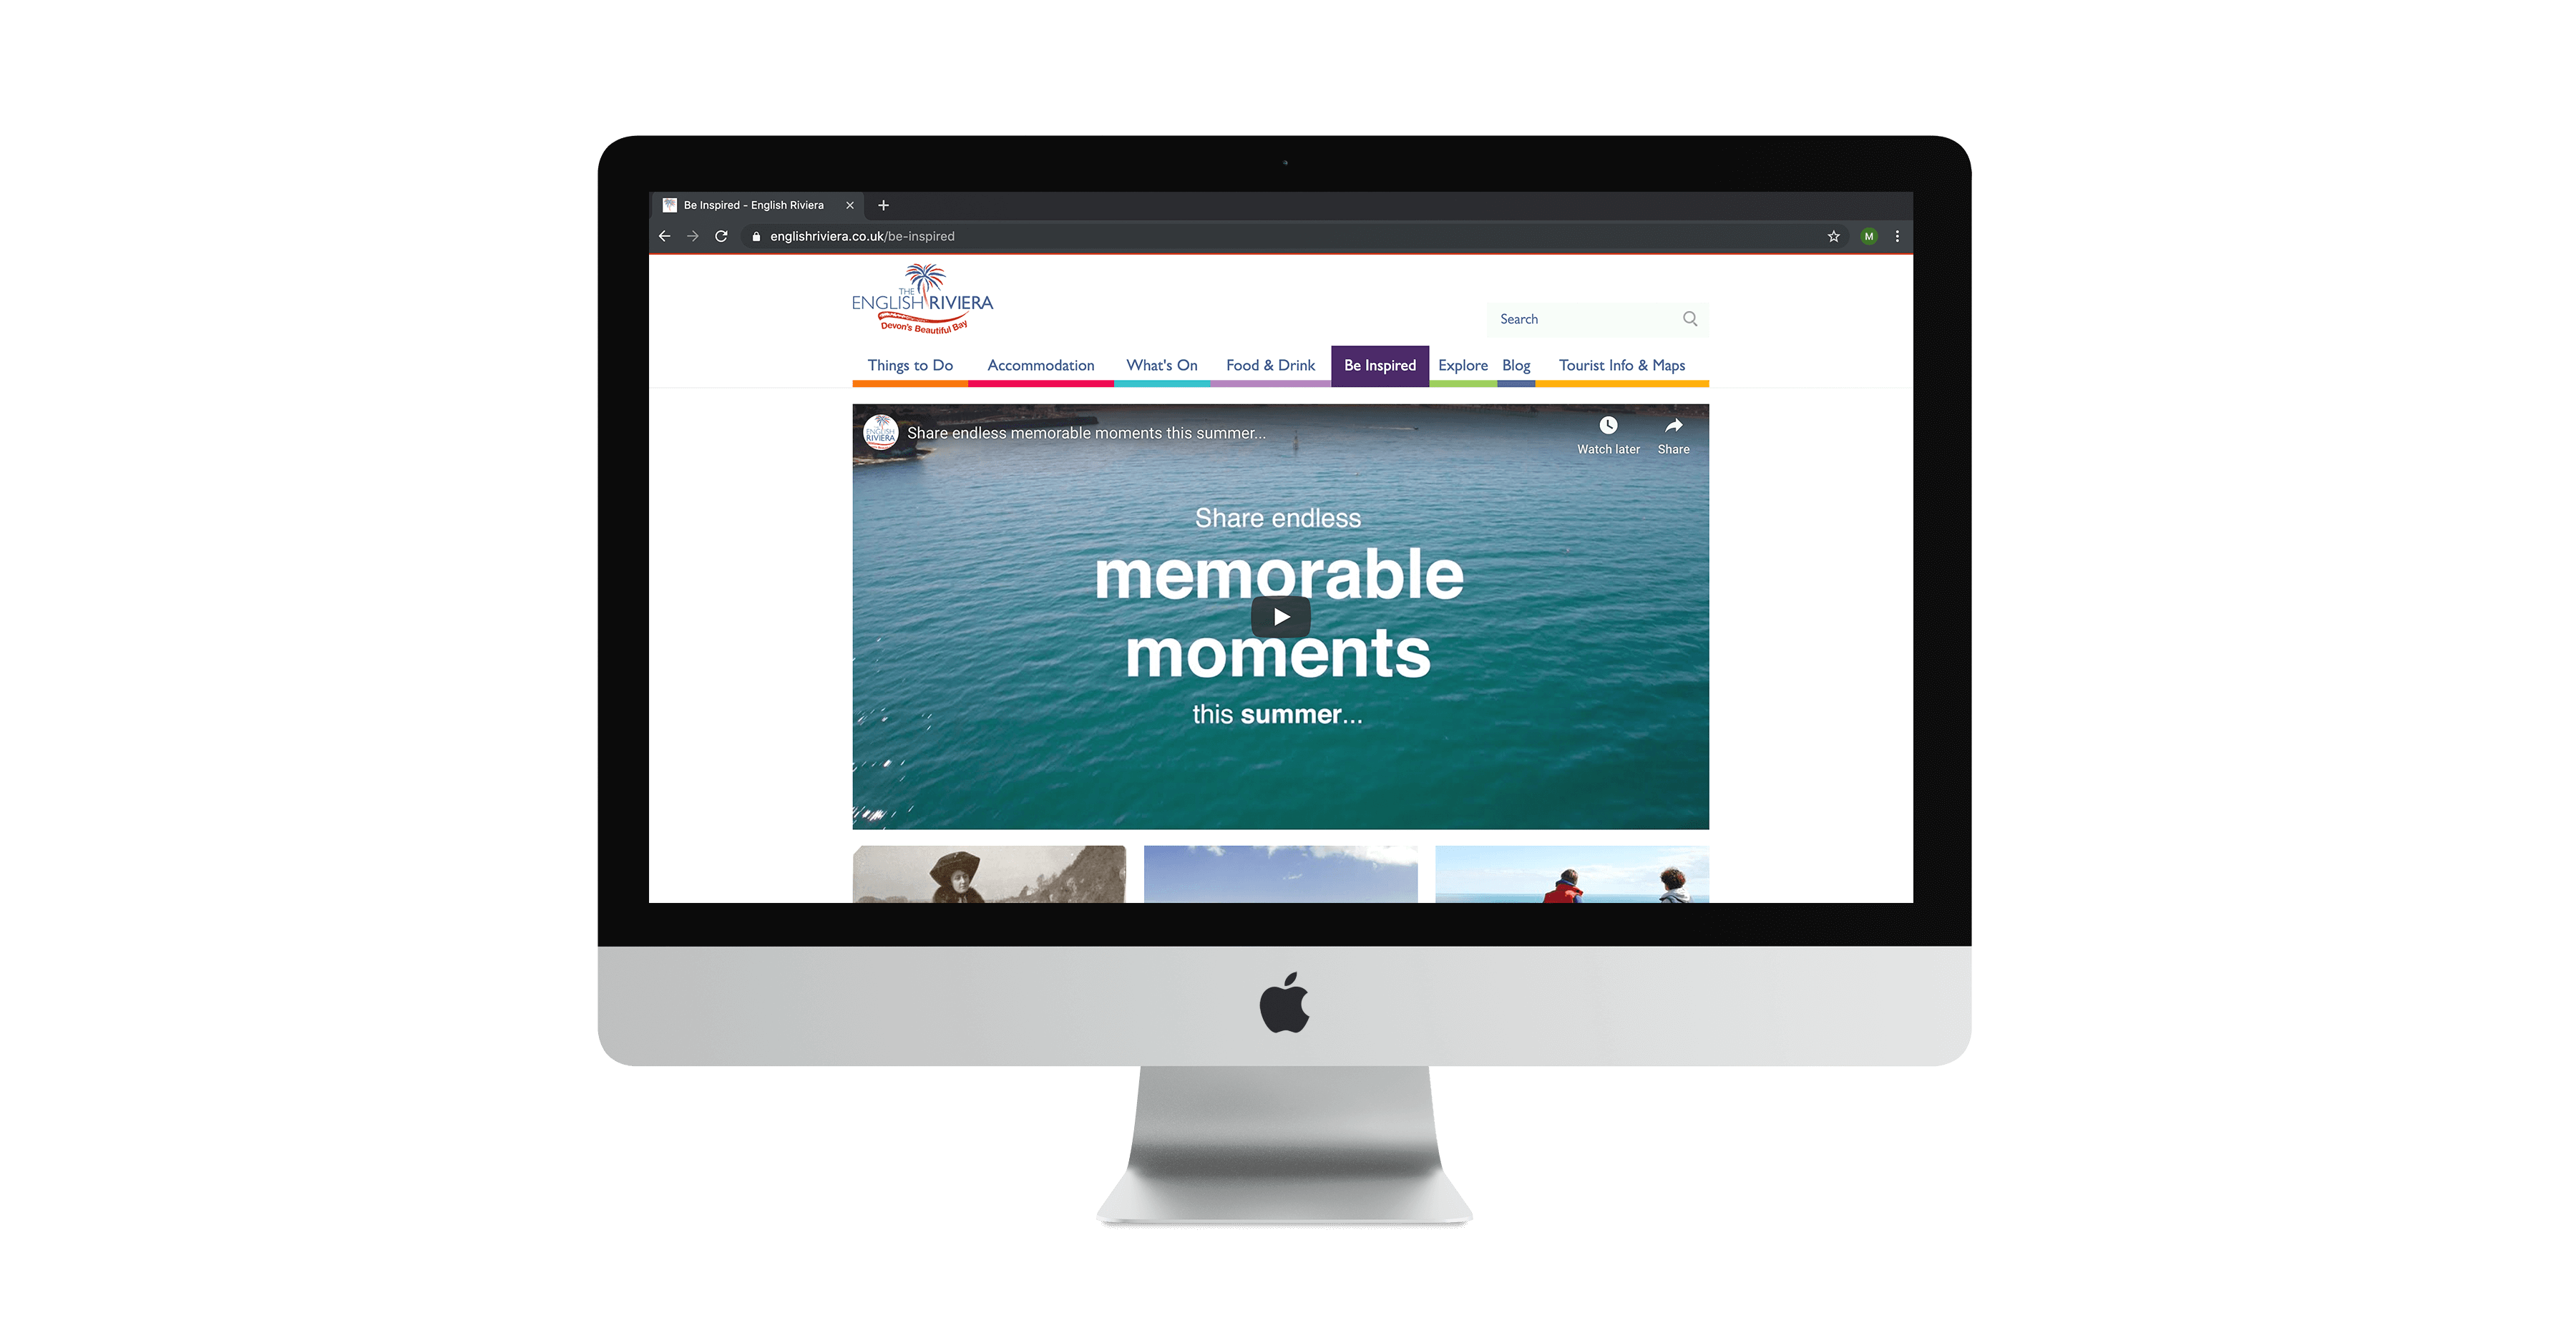 riviera-moments-microsite